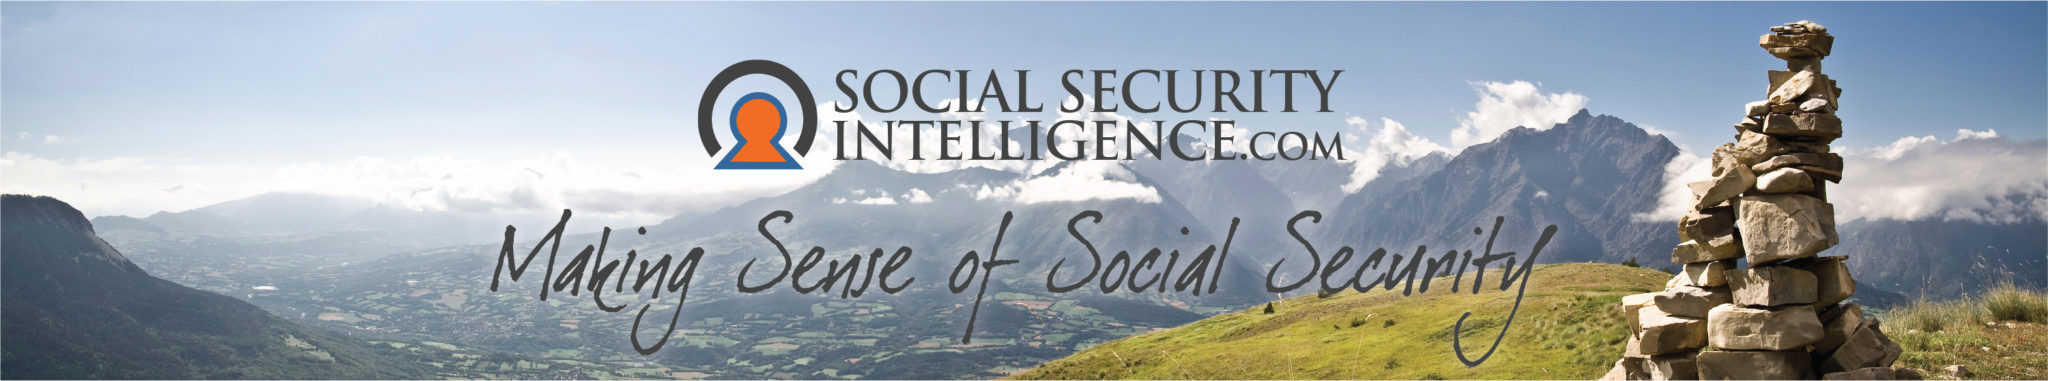 Social Security Change of Address How To Guide – Social Security Change of Address